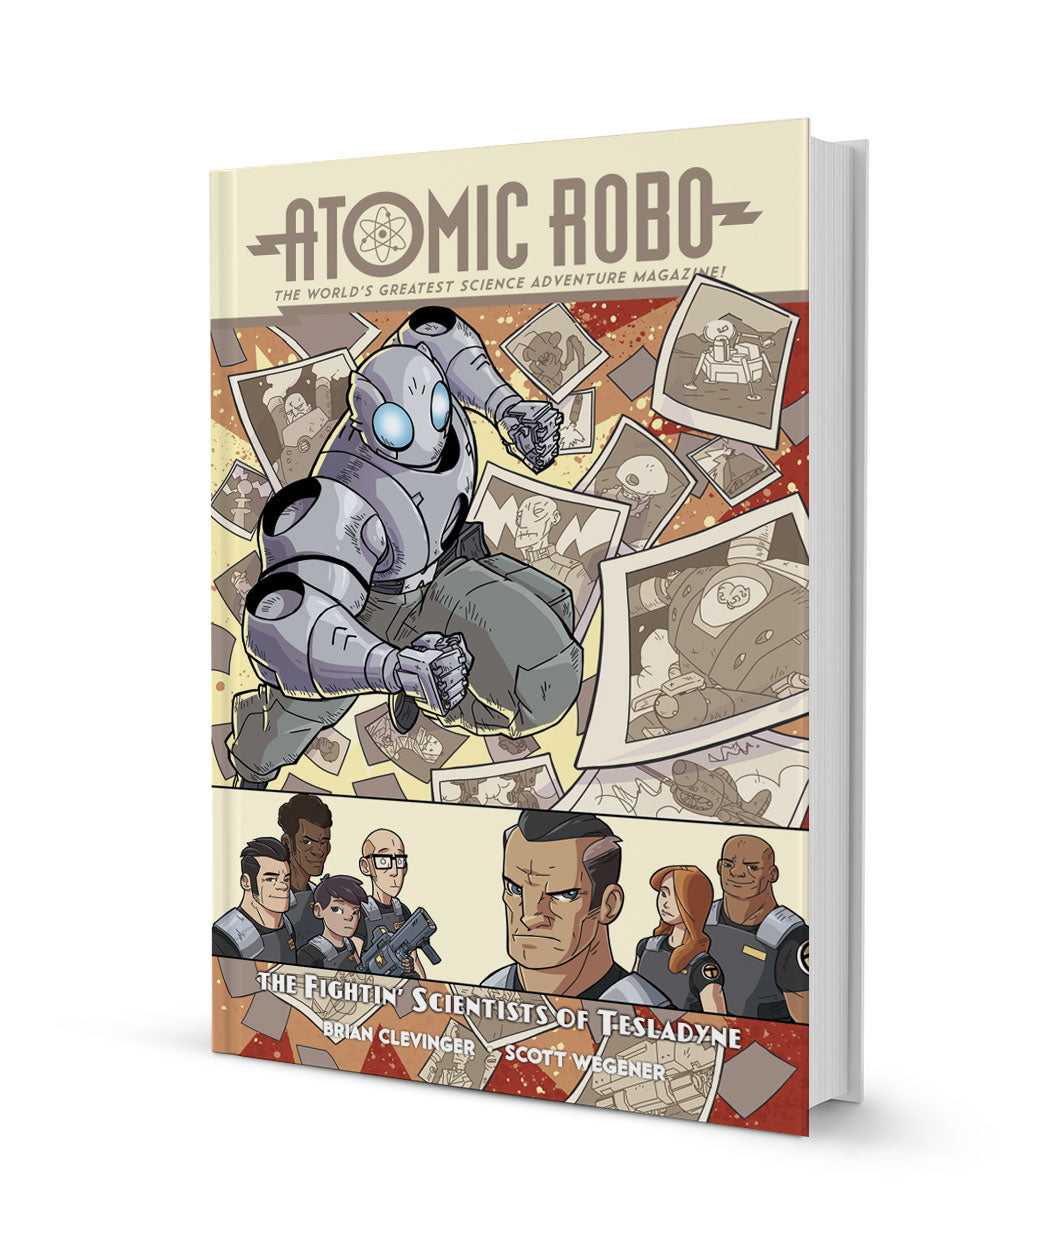 Atomic Robo and the Fighting Scientists of Tesladyne